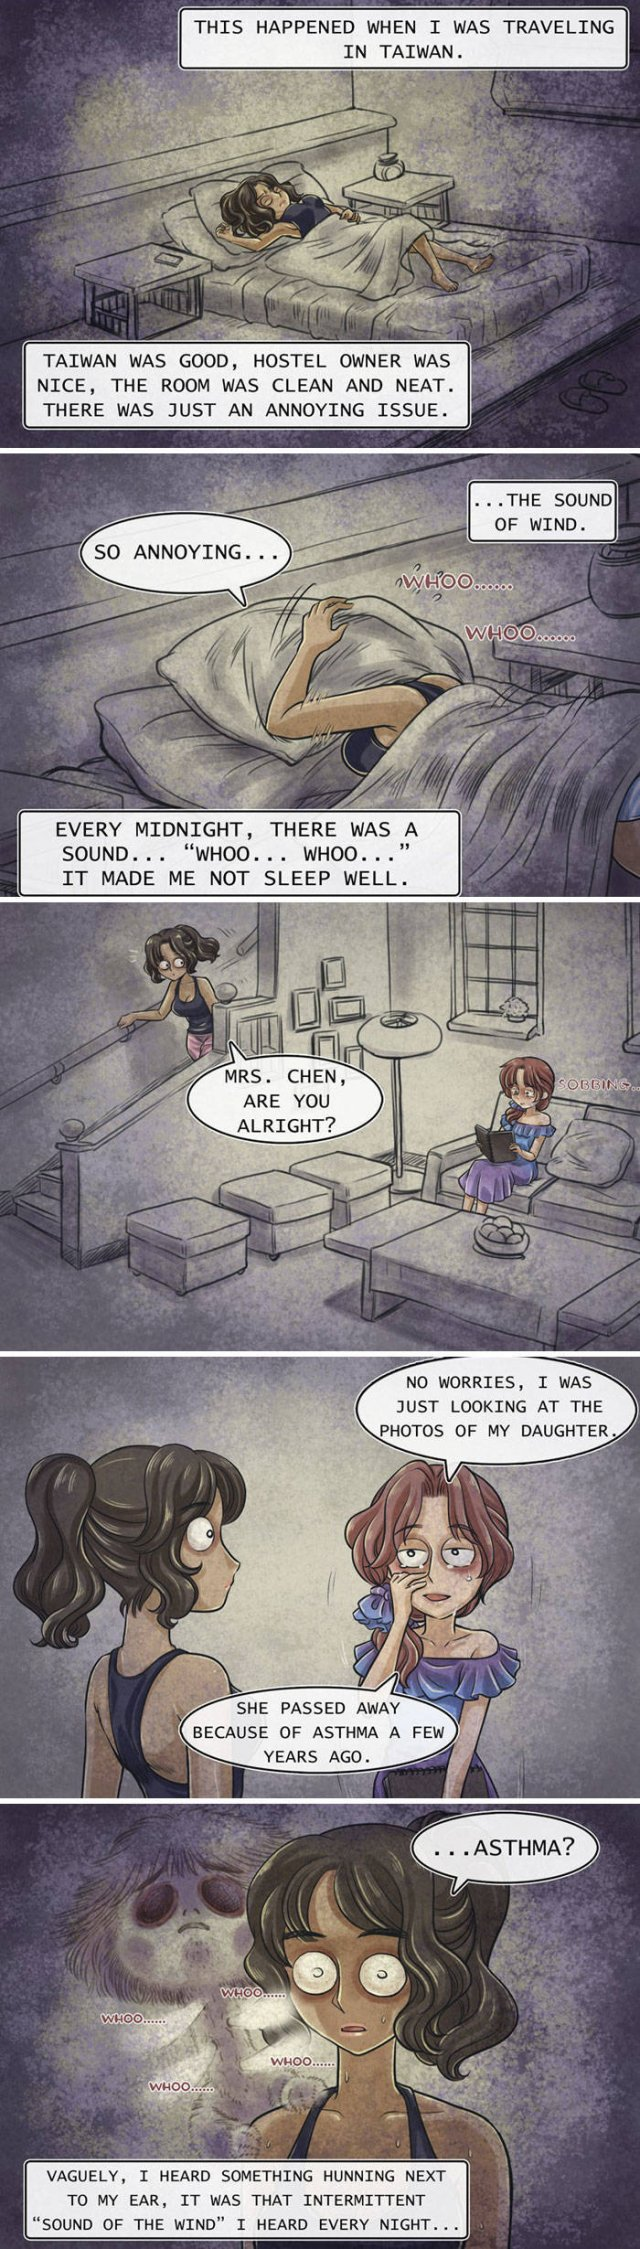 Scary Comic With Unexpected Ending